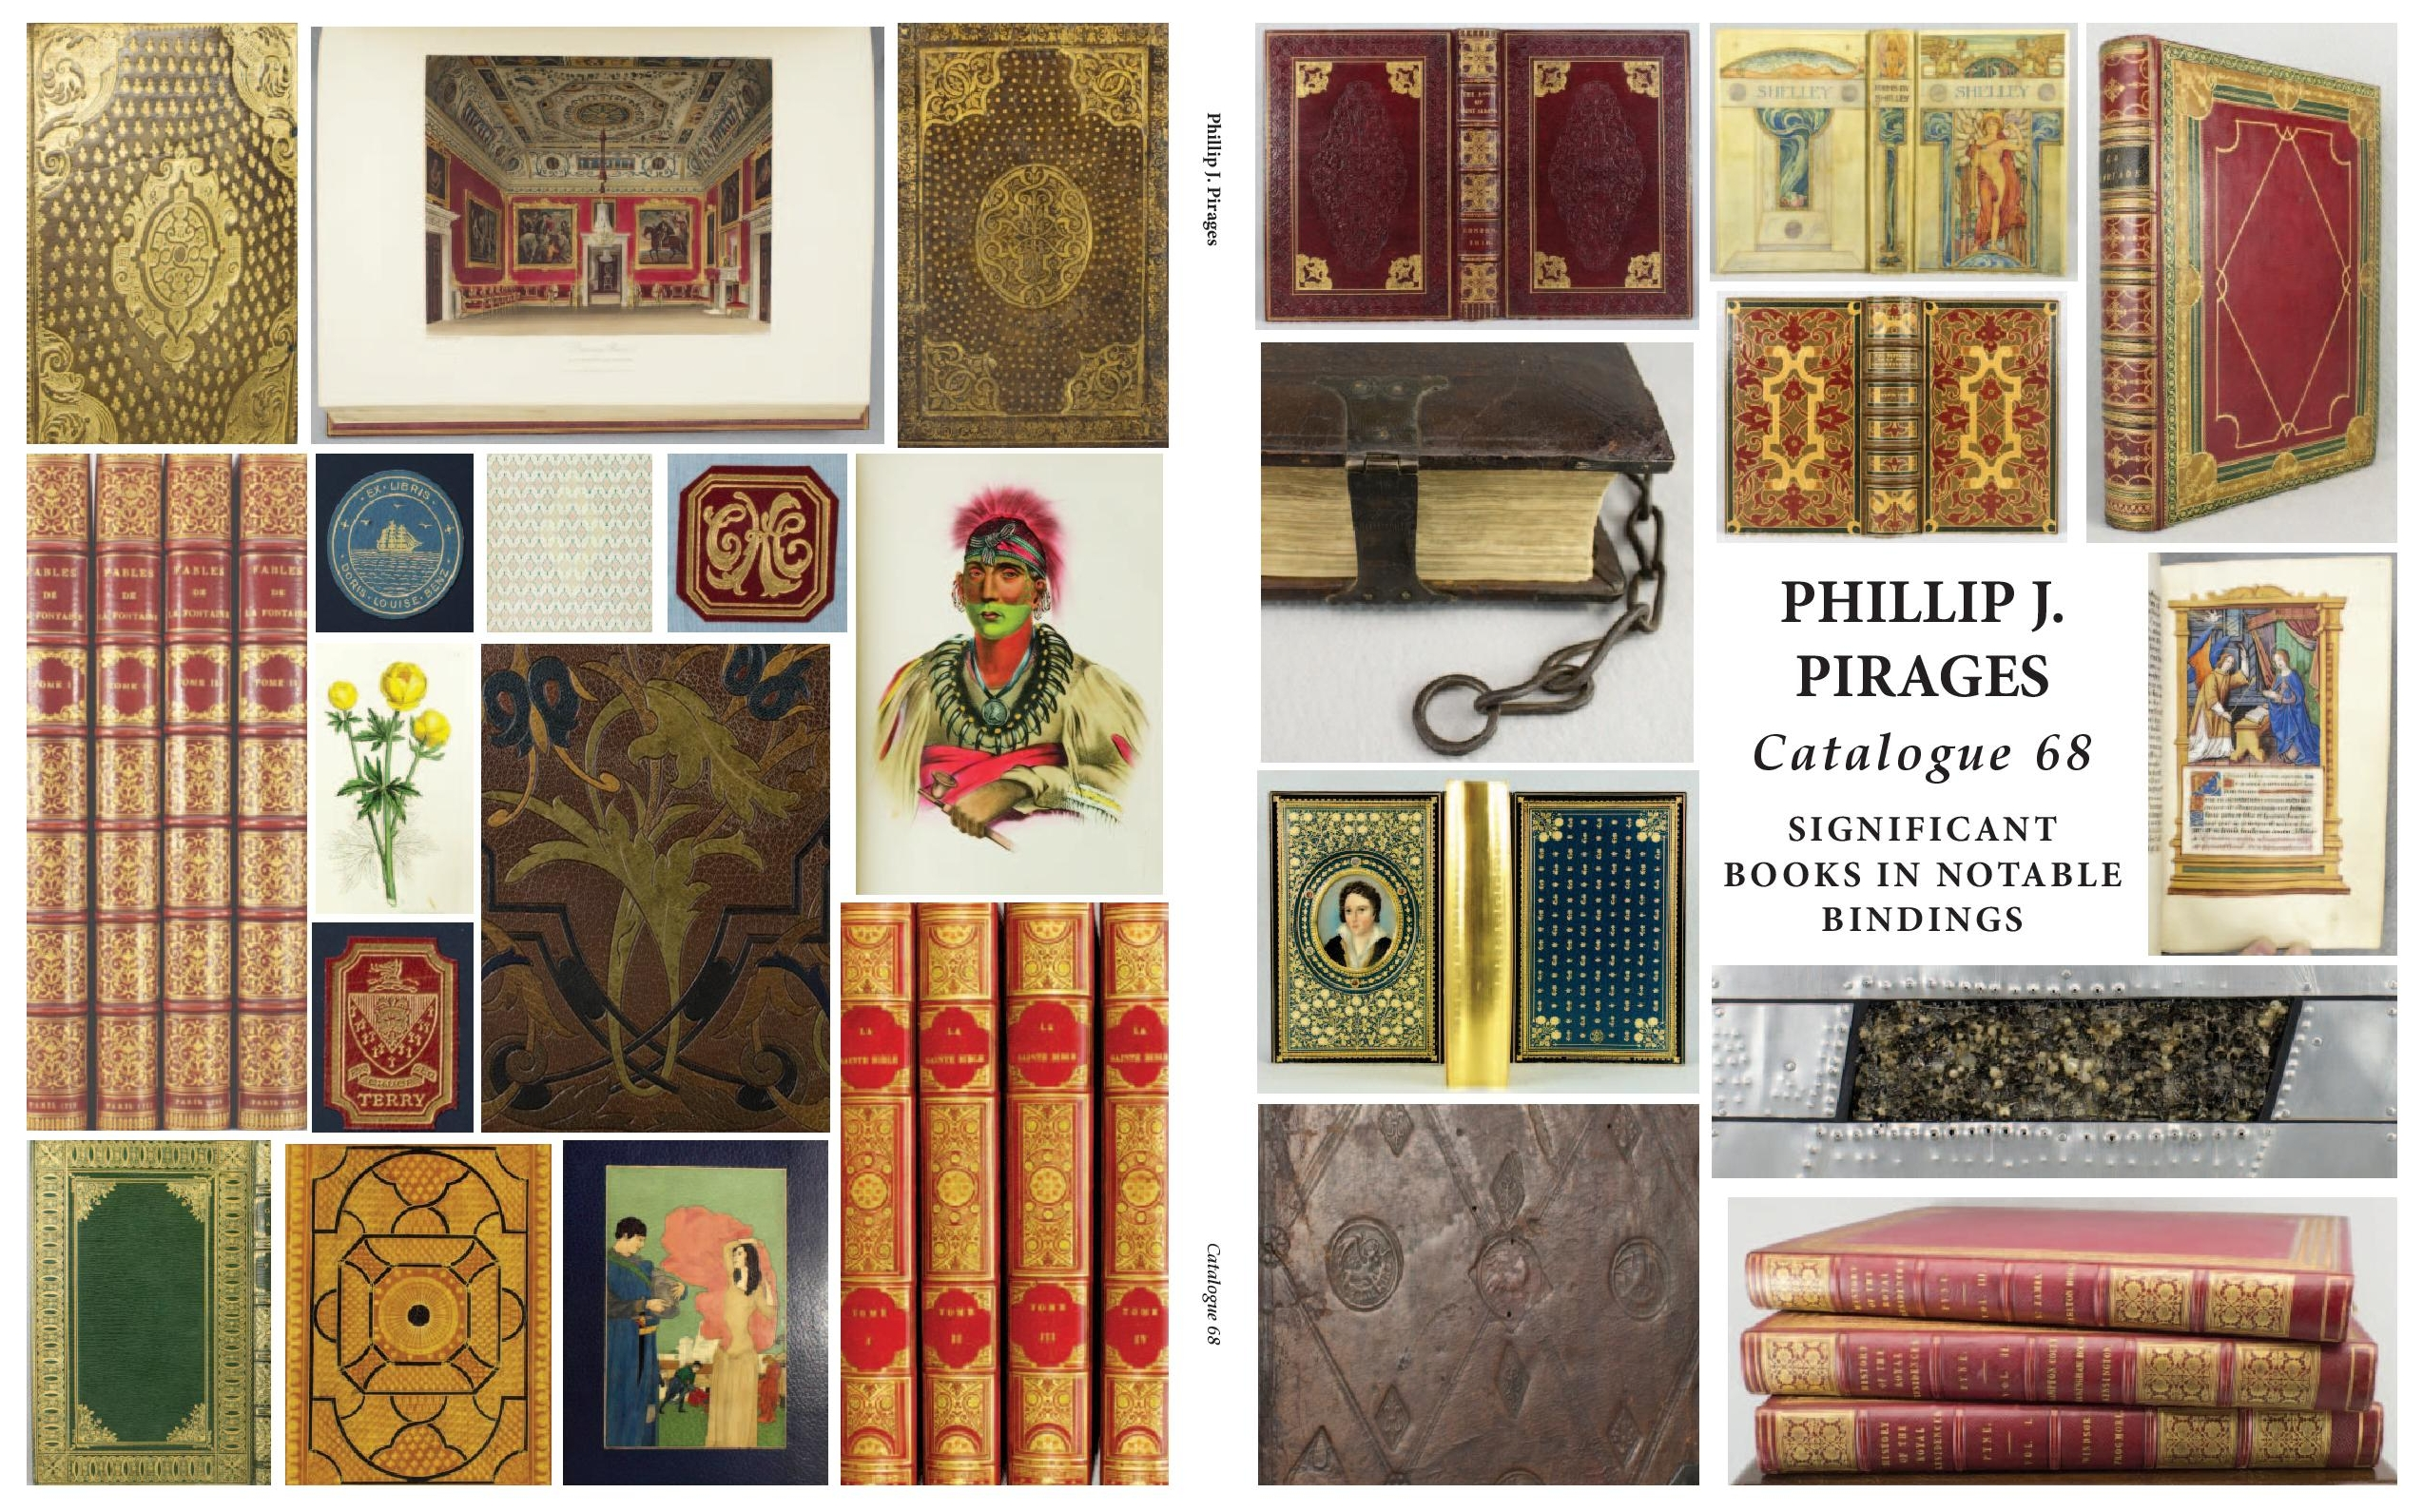 Phillip J. Pirages Catalogue 68